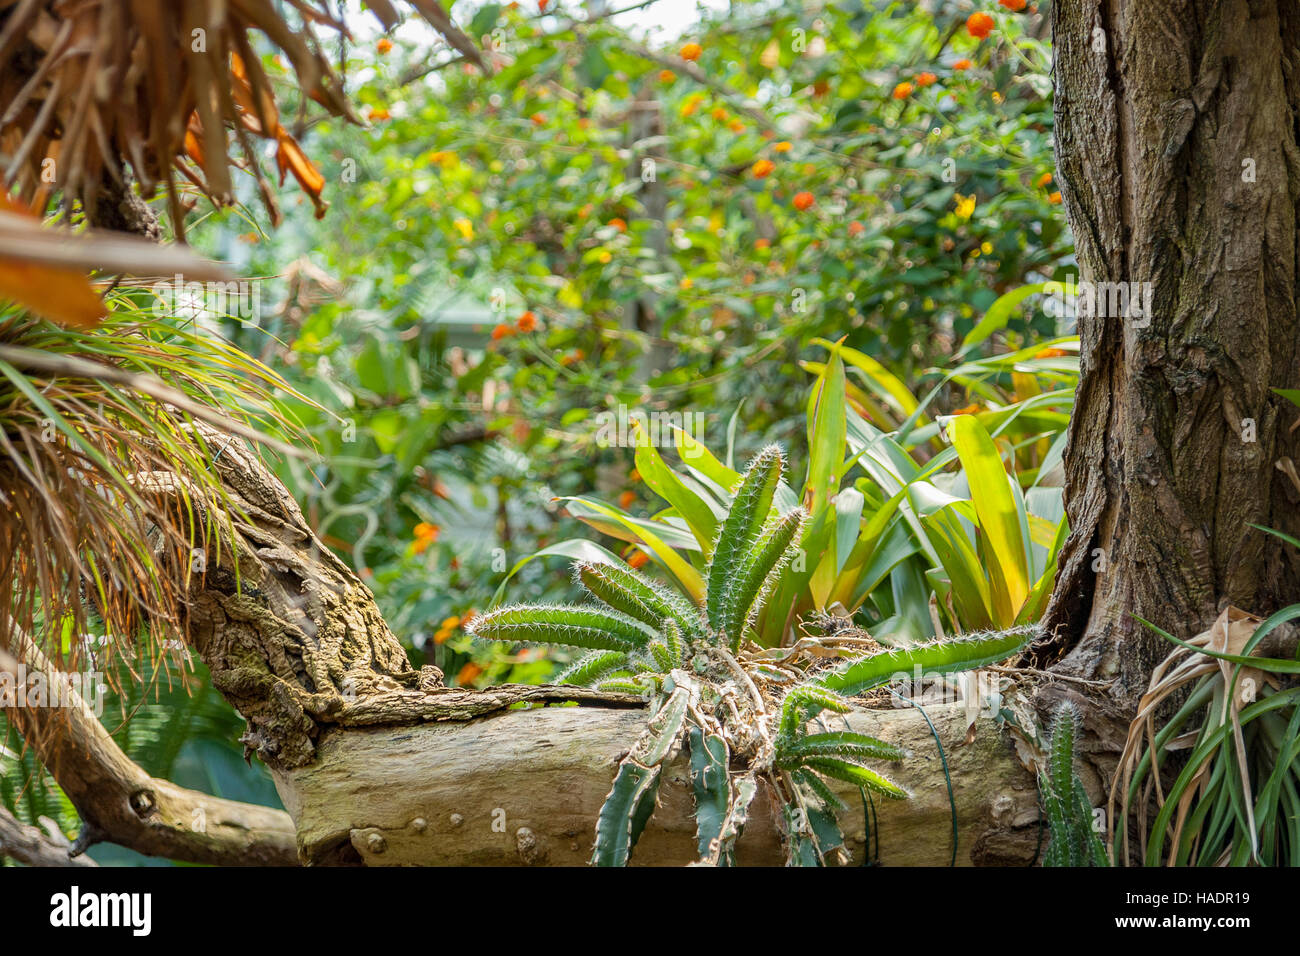 vivid scenery including lots of various jungle plants - Stock Image